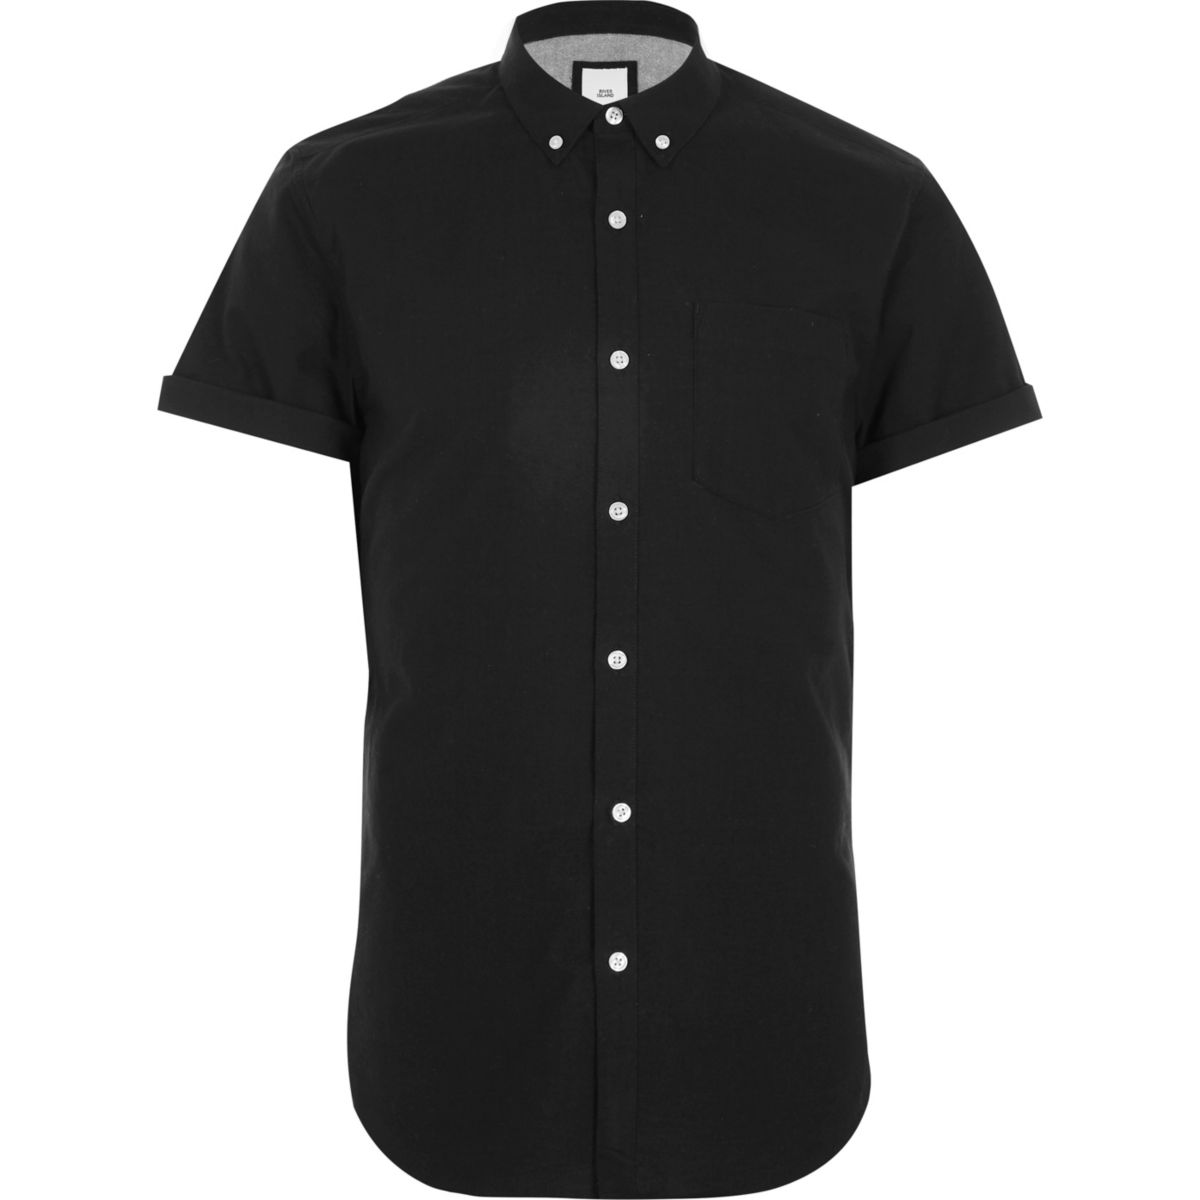 Black short sleeve slim fit oxford shirt shirts sale men for Mens black short sleeve dress shirt